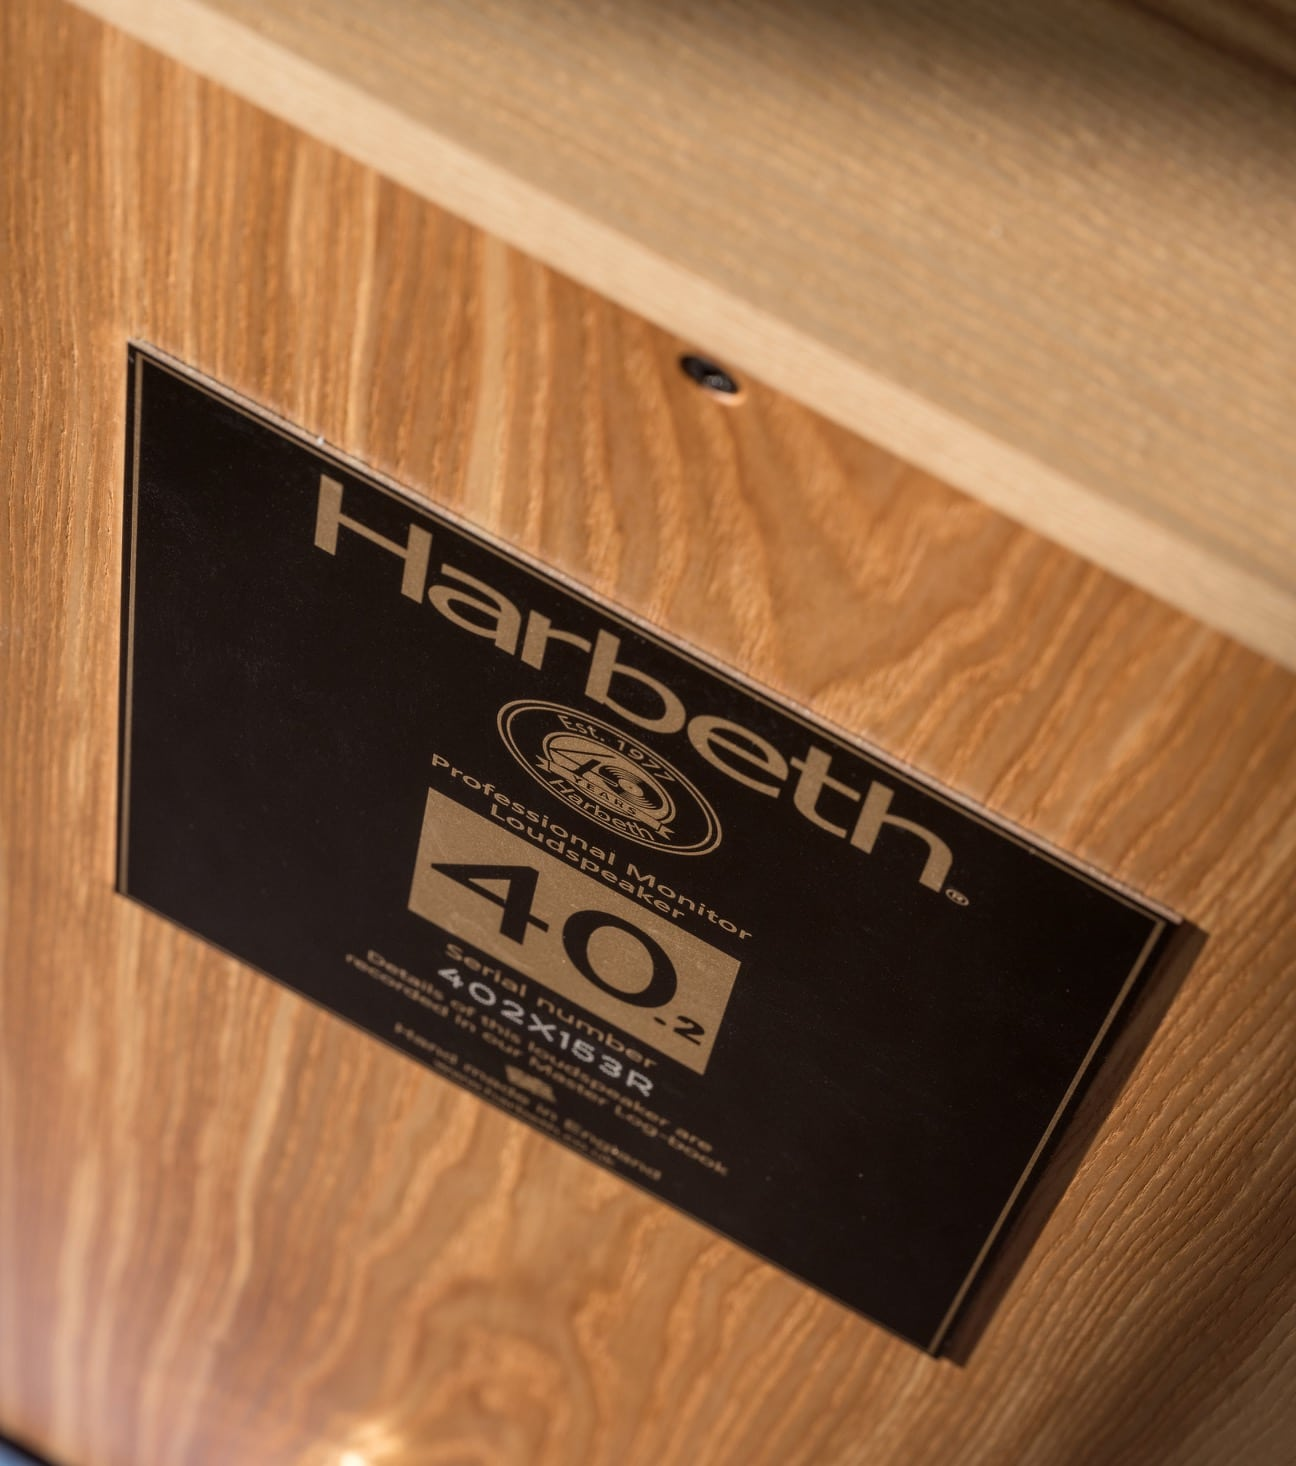 Harbeth P3ESR & M40.2: Limited Edition